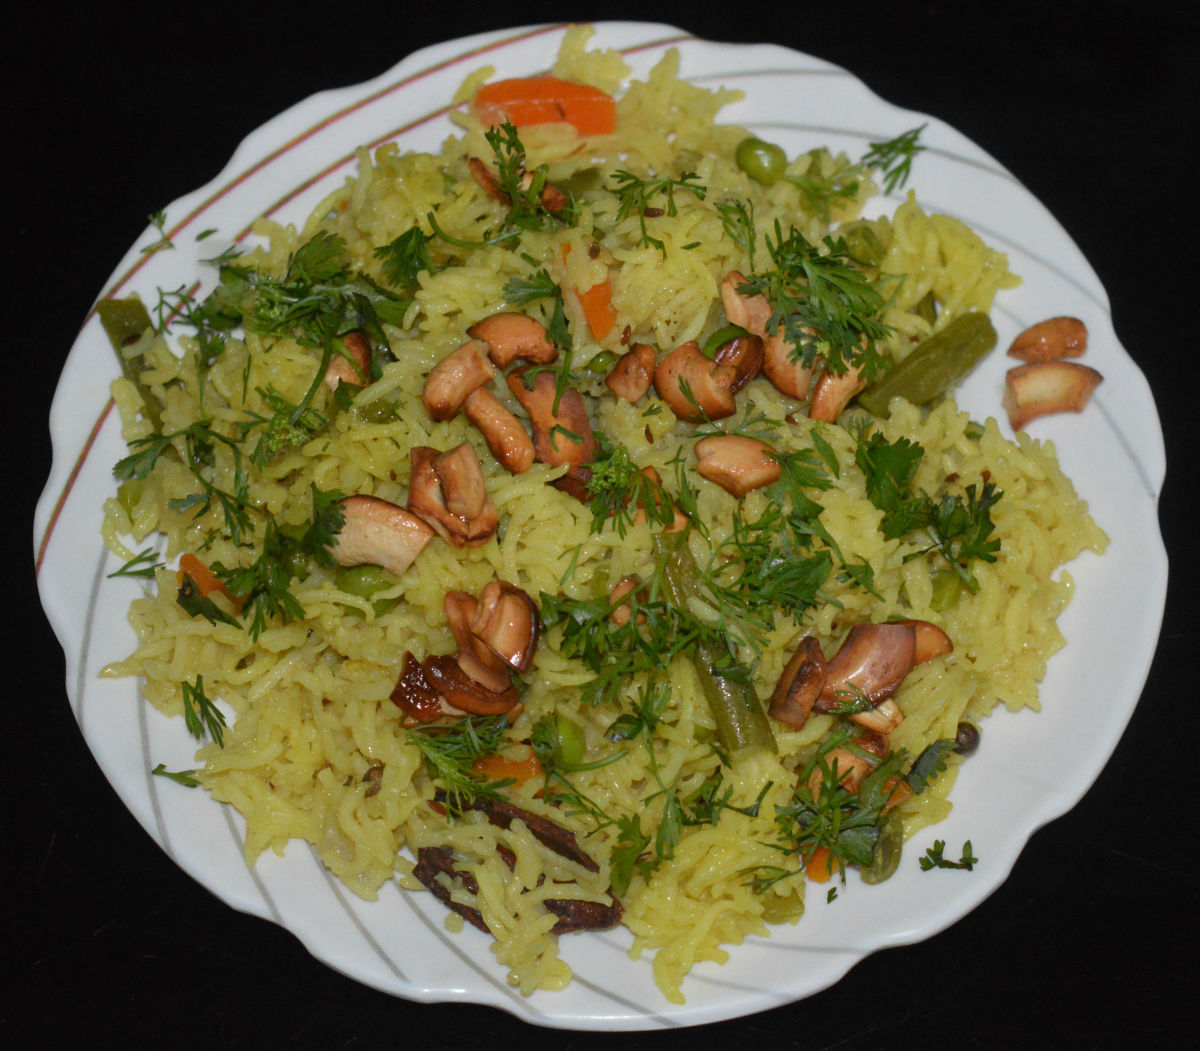 Serve this pulao hot with a spicy sauce or chutney. You can eat it just as is. It's so yummy!